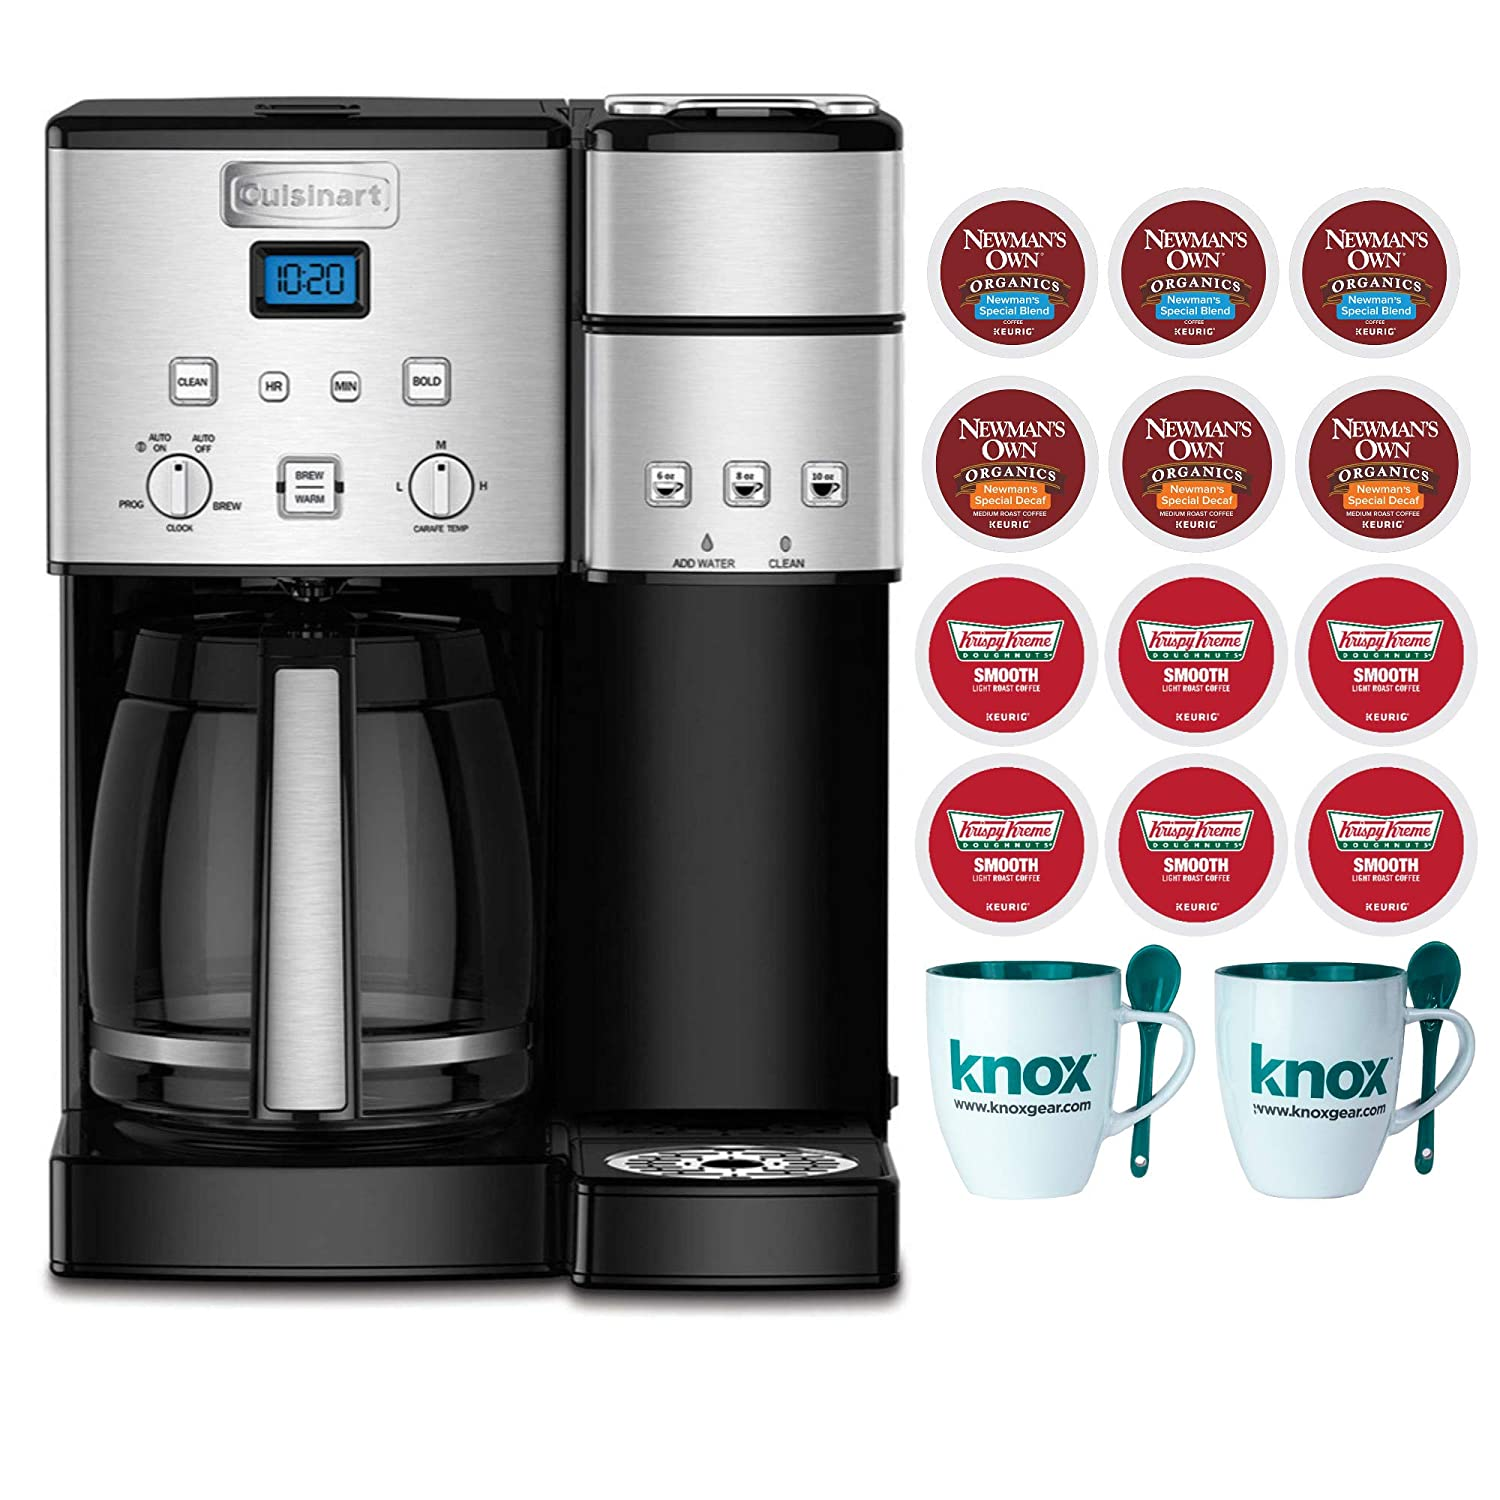 232dd0d731c Amazon.com  Cuisinart SS-15 12-Cup Coffee Maker and Single-Serve Brewer